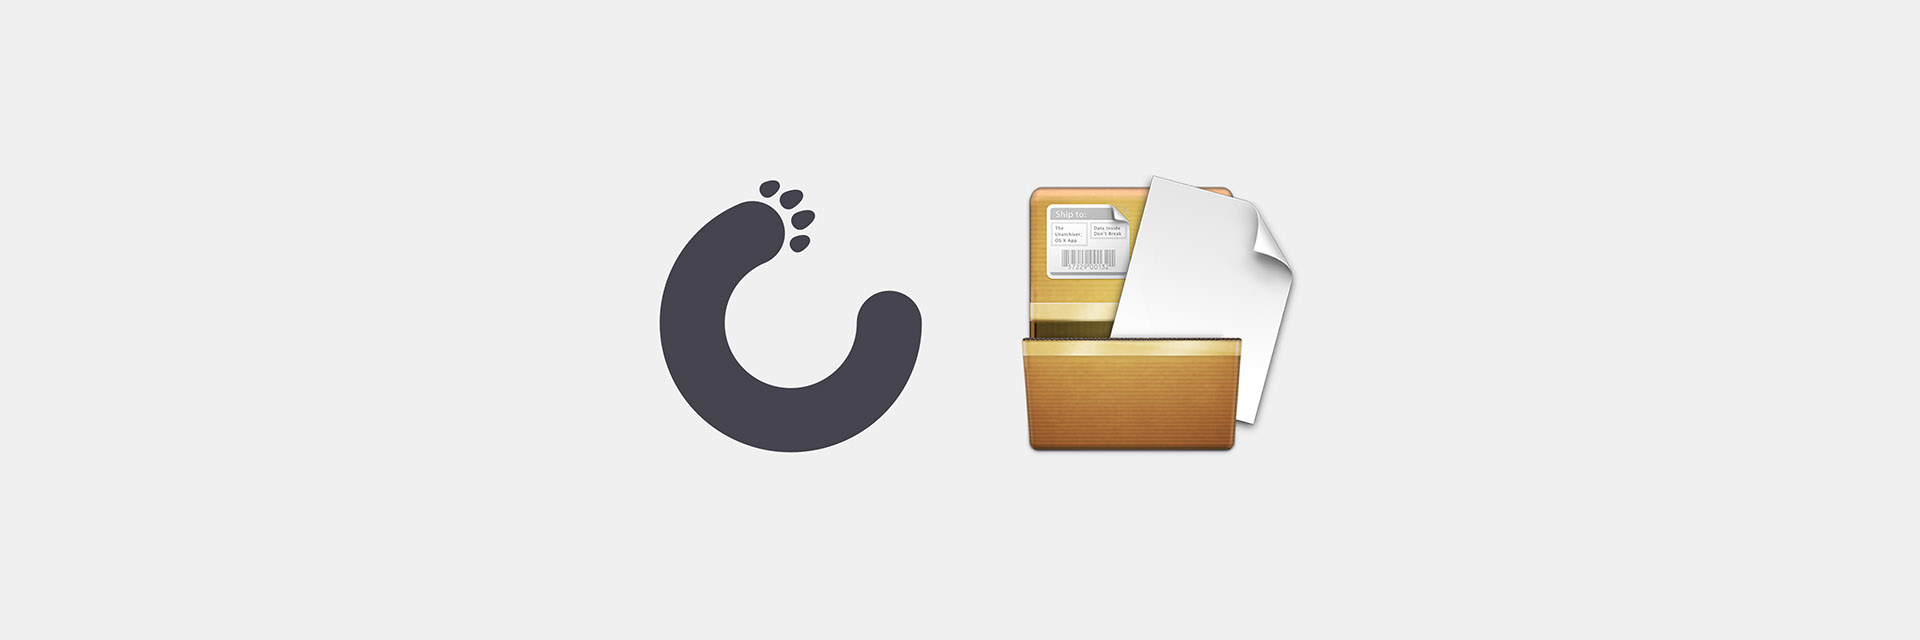 MacPaw acquires The Unarchiver and commits to making it even better